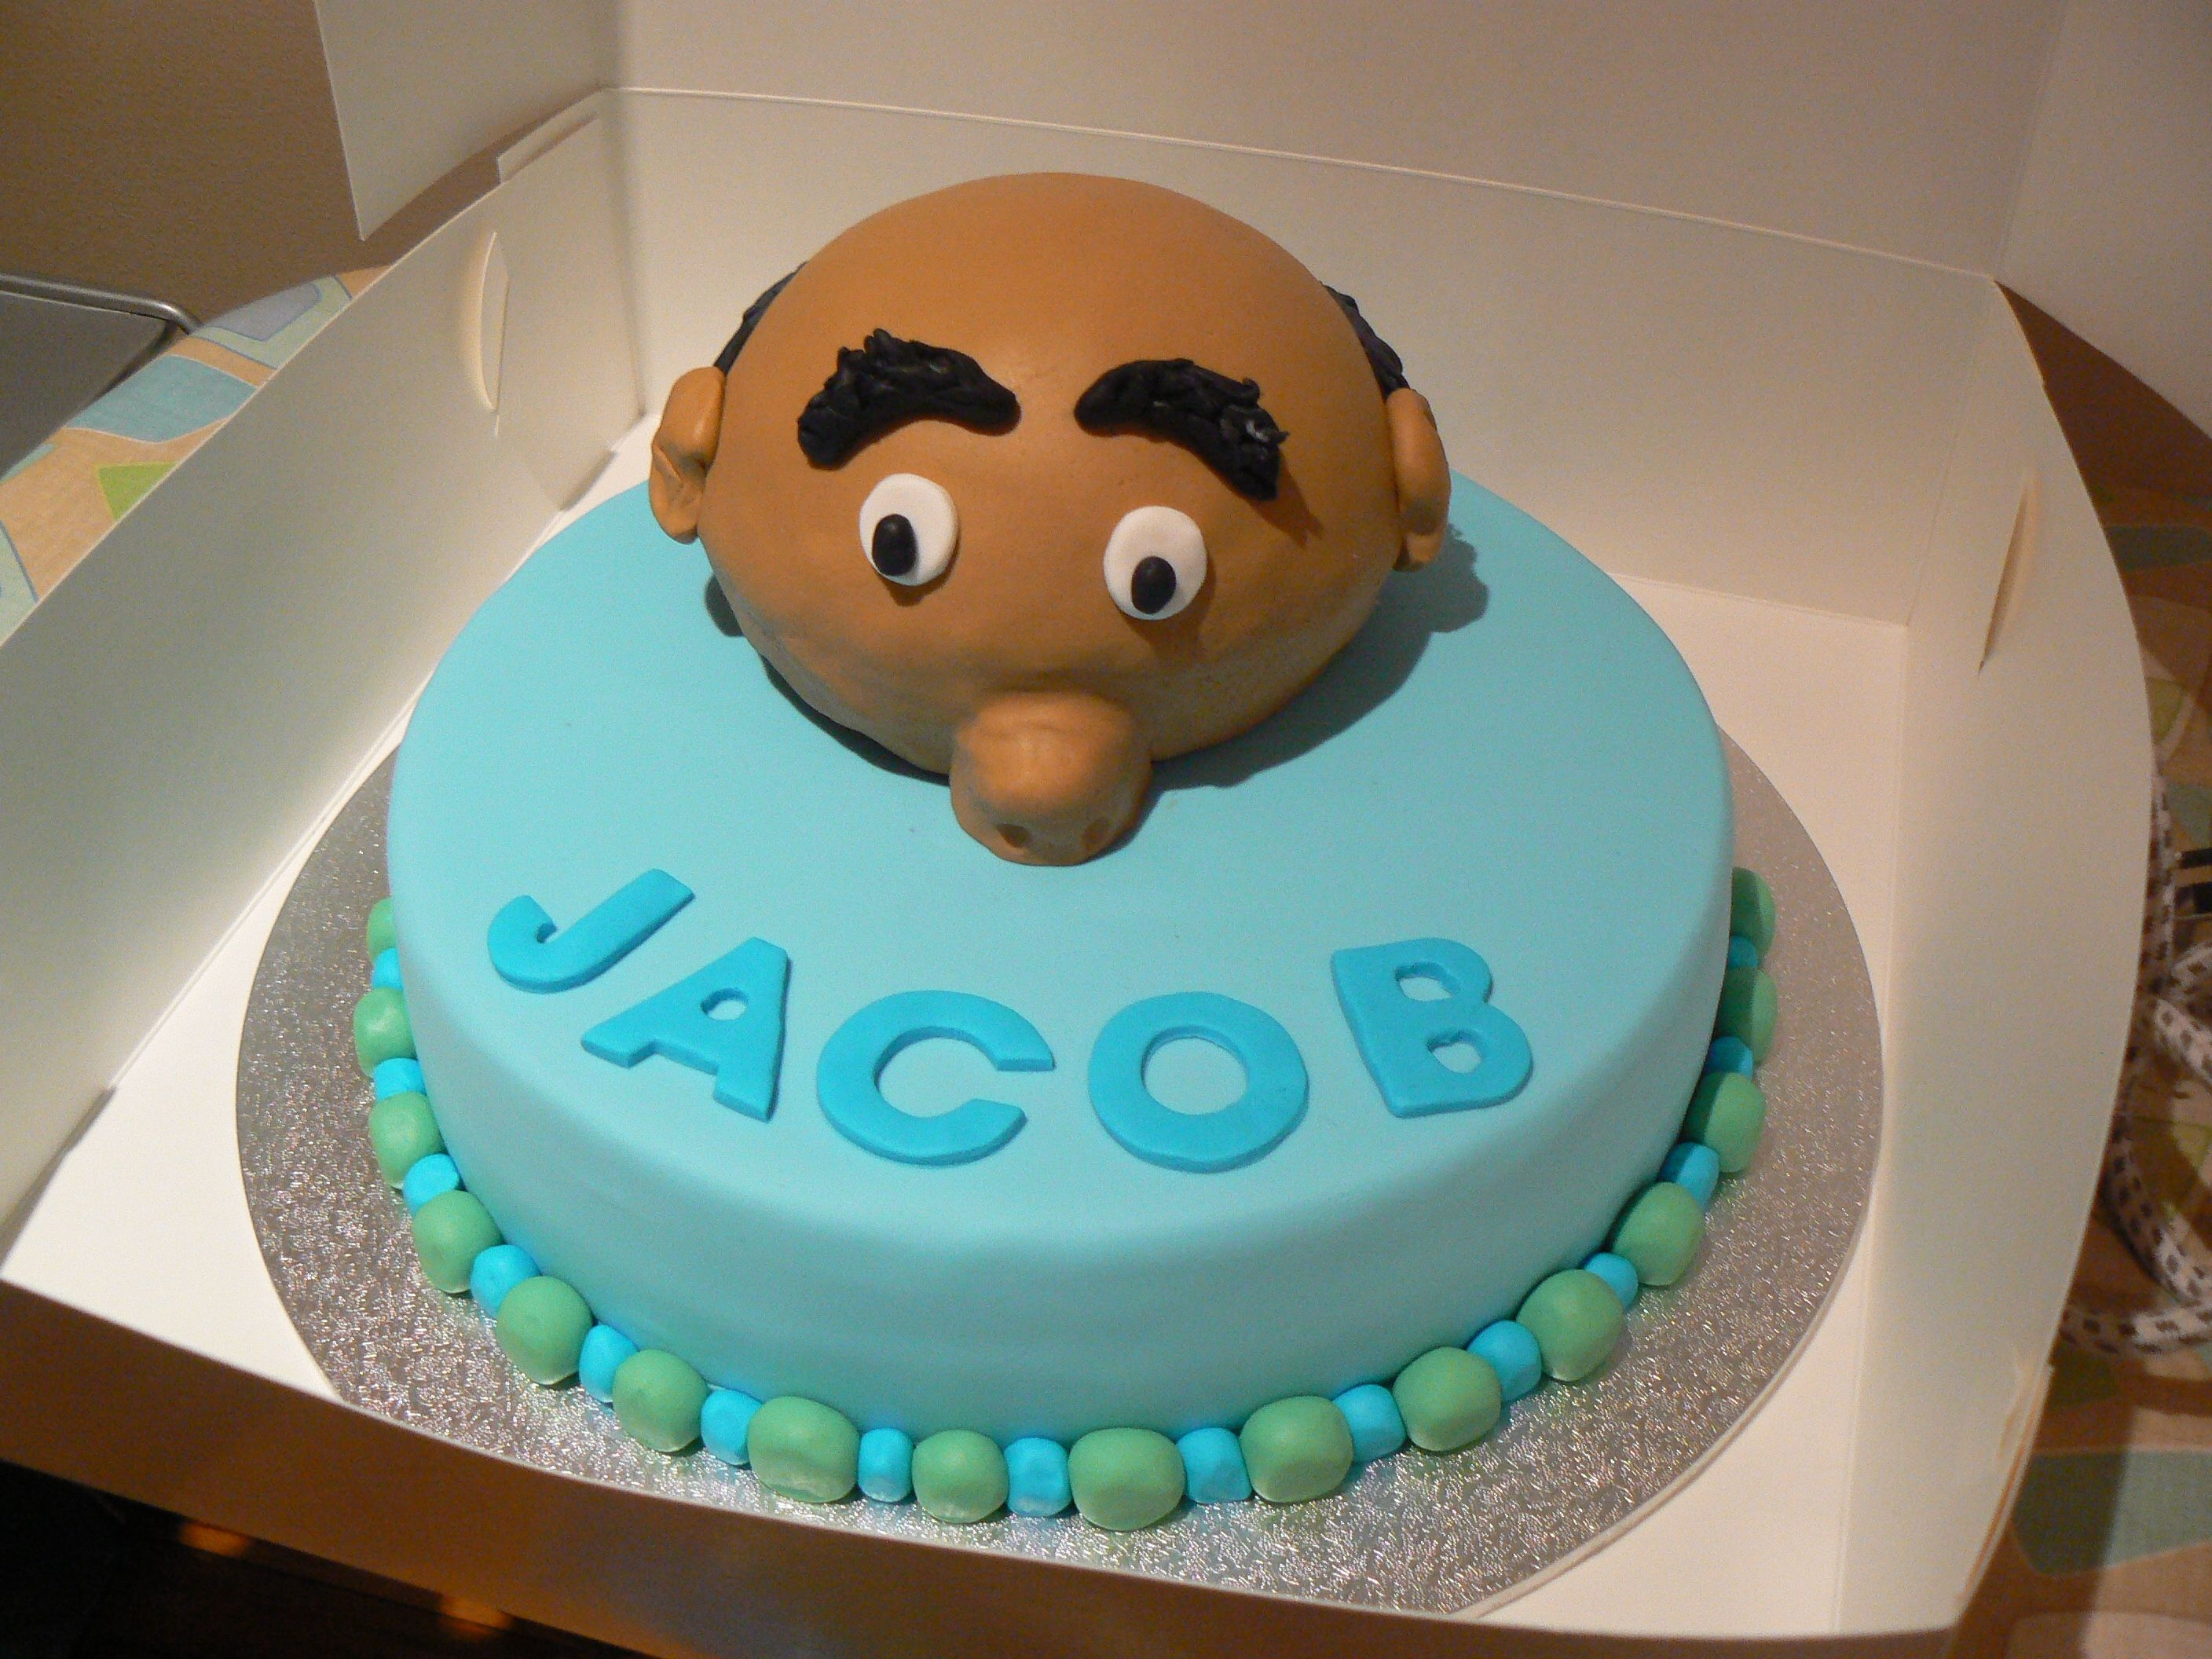 60Th Birthday Cake Made for a friends fathers 60th birthday, it is all made from fondant and was such a fun cake to make